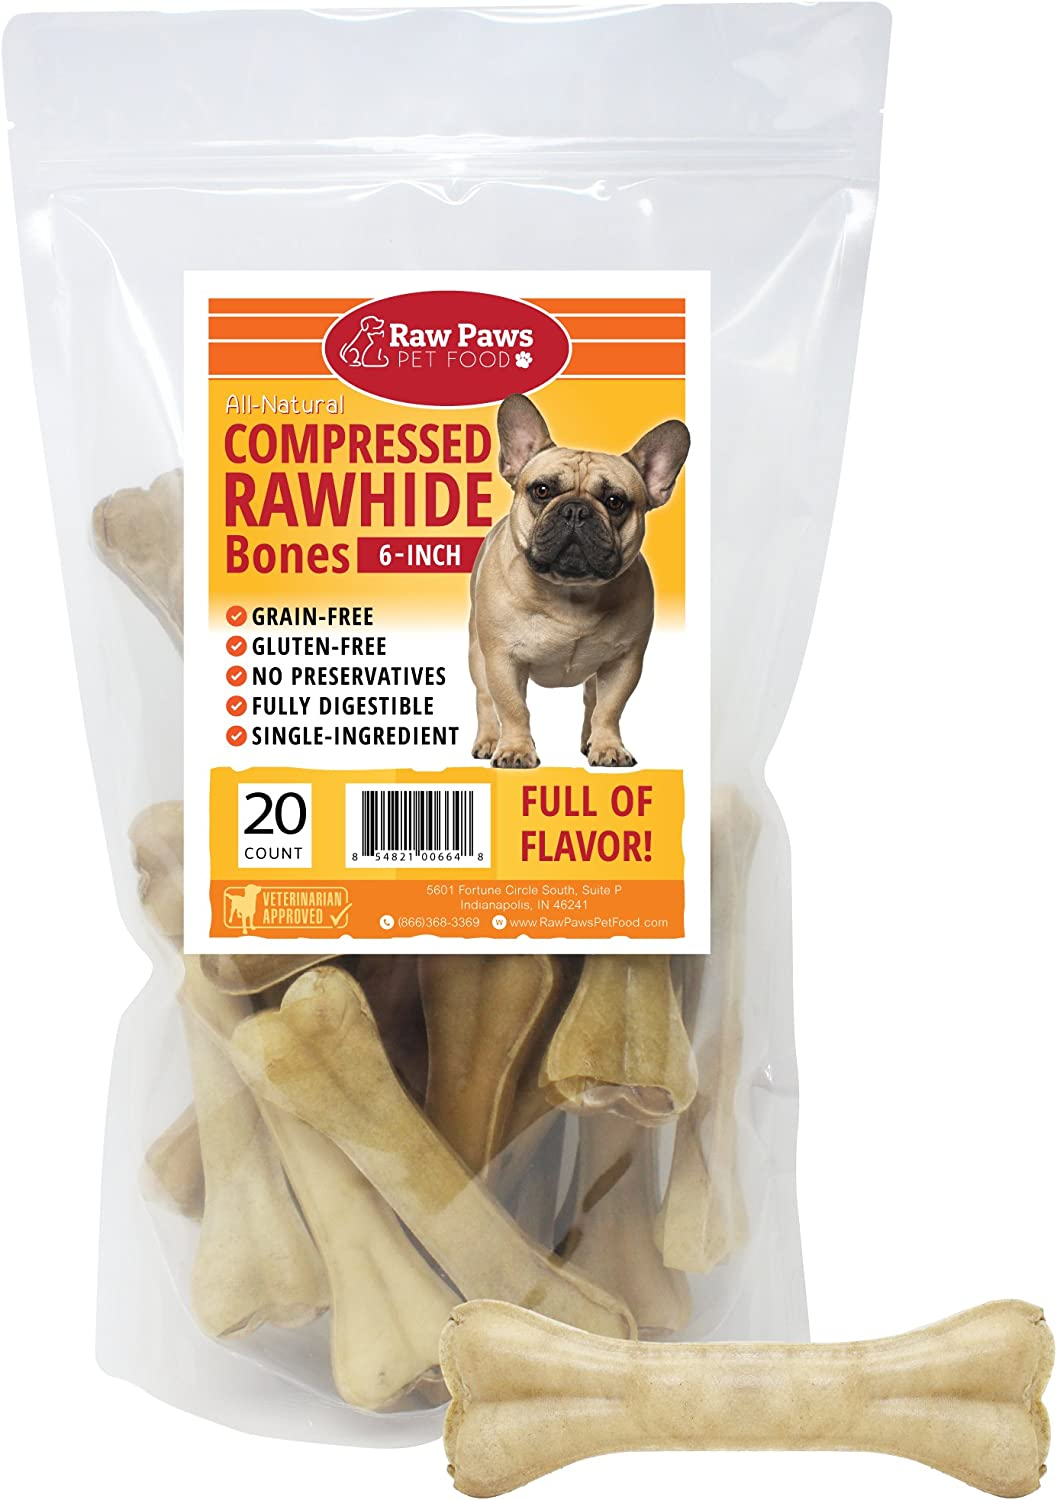 Raw Paws Pet Premium 6-inch Compressed Rawhide Bones for Dogs – Packed in USA – Long Lasting Dog Chews – Natural Pressed Rawhides – Medium Dog Bones – Beef Hide Bones for Aggressive Chewers